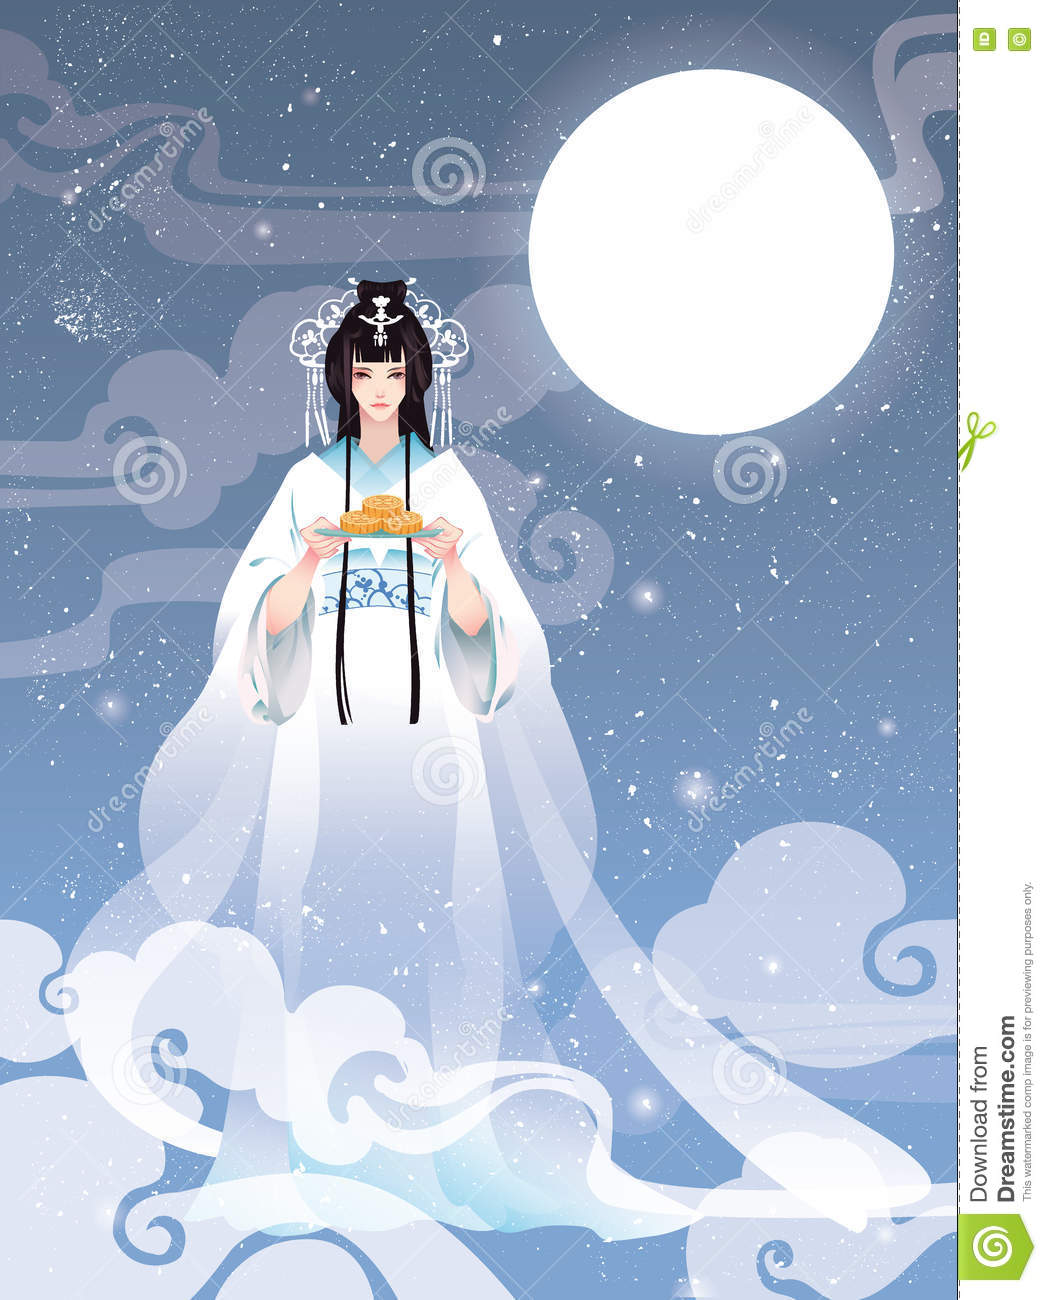 Moon Cake Cartoon Images : Vector Illustration Mid Autumn Festival With Chang e, The ...